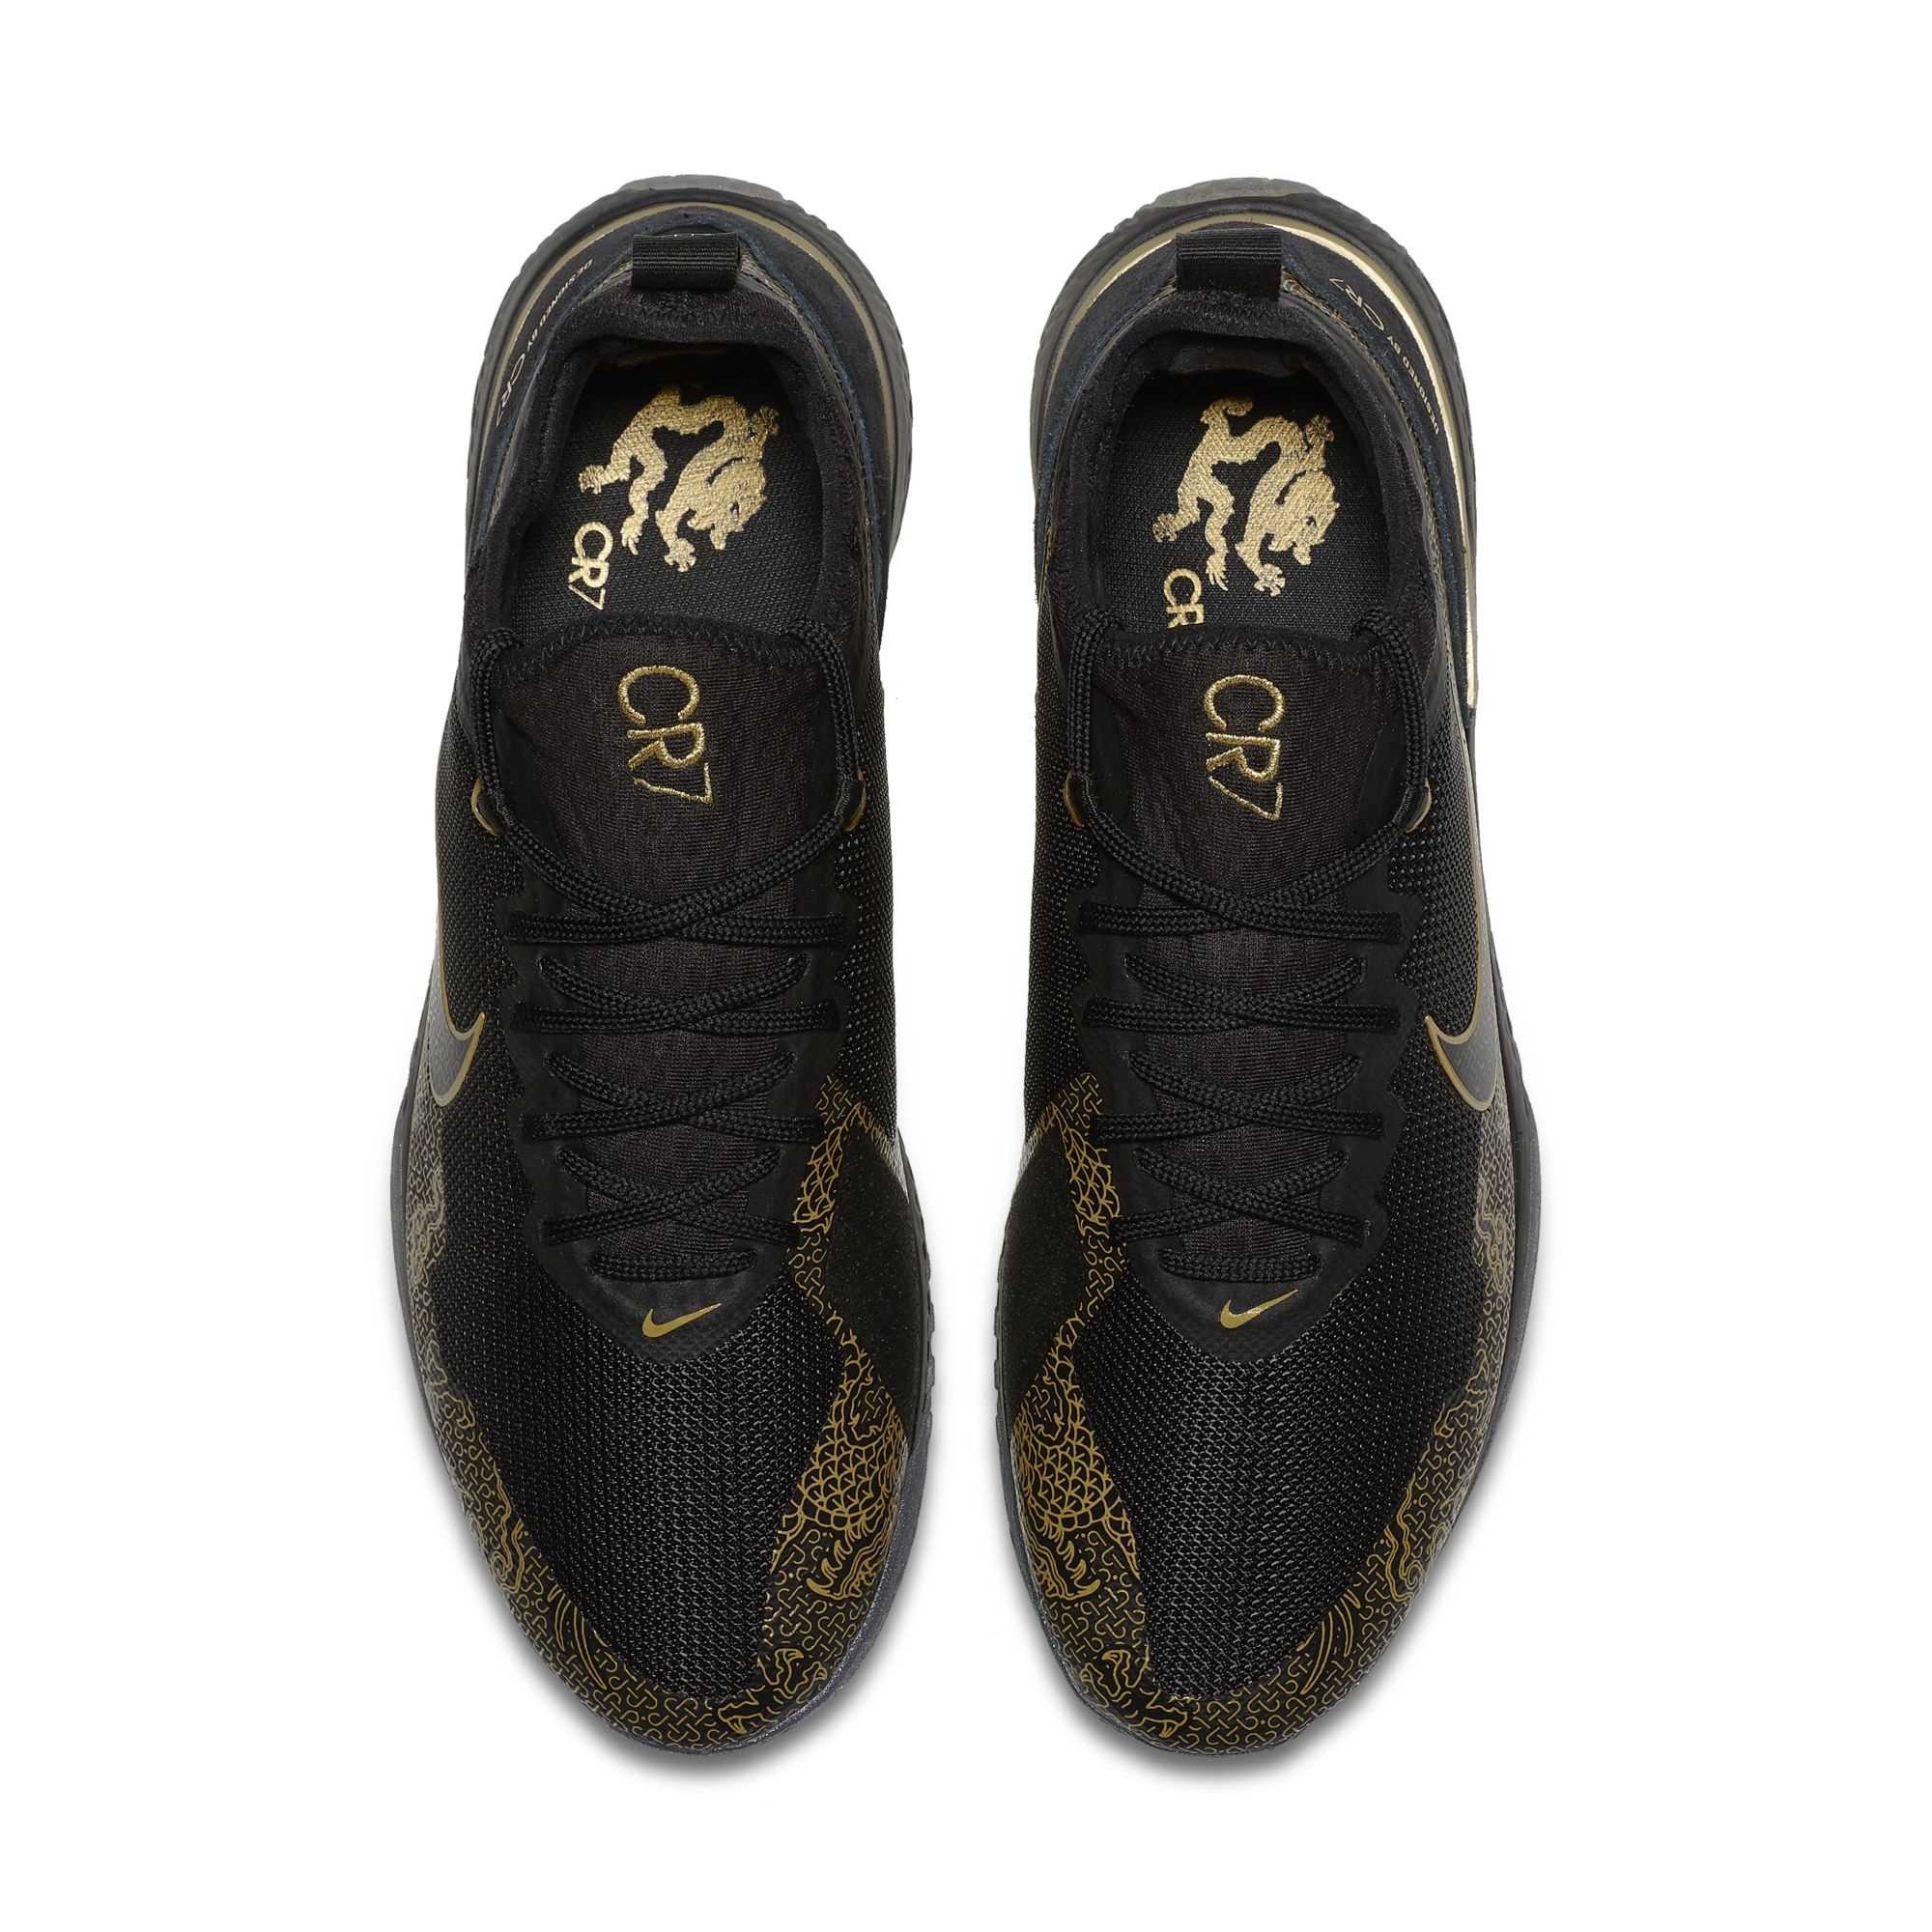 NIKE FC CR7 BLACK:METALLIC GOLD:BLACK 3